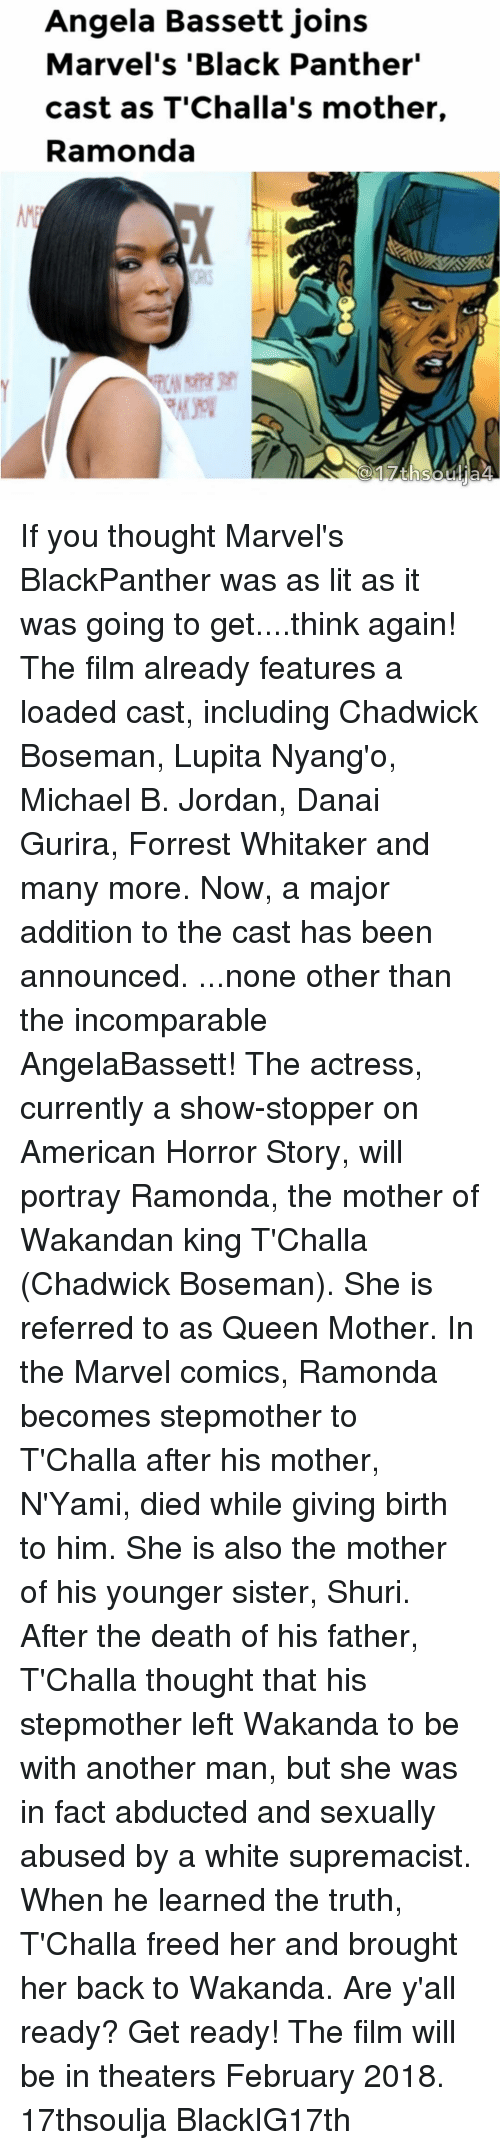 """chadwicks: Angela Bassett joins  Marvel's """"Black Panther""""  cast as T'Challa's mother,  Ramonda If you thought Marvel's BlackPanther was as lit as it was going to get....think again! The film already features a loaded cast, including Chadwick Boseman, Lupita Nyang'o, Michael B. Jordan, Danai Gurira, Forrest Whitaker and many more. Now, a major addition to the cast has been announced. ...none other than the incomparable AngelaBassett! The actress, currently a show-stopper on American Horror Story, will portray Ramonda, the mother of Wakandan king T'Challa (Chadwick Boseman). She is referred to as Queen Mother. In the Marvel comics, Ramonda becomes stepmother to T'Challa after his mother, N'Yami, died while giving birth to him. She is also the mother of his younger sister, Shuri. After the death of his father, T'Challa thought that his stepmother left Wakanda to be with another man, but she was in fact abducted and sexually abused by a white supremacist. When he learned the truth, T'Challa freed her and brought her back to Wakanda. Are y'all ready? Get ready! The film will be in theaters February 2018. 17thsoulja BlackIG17th"""